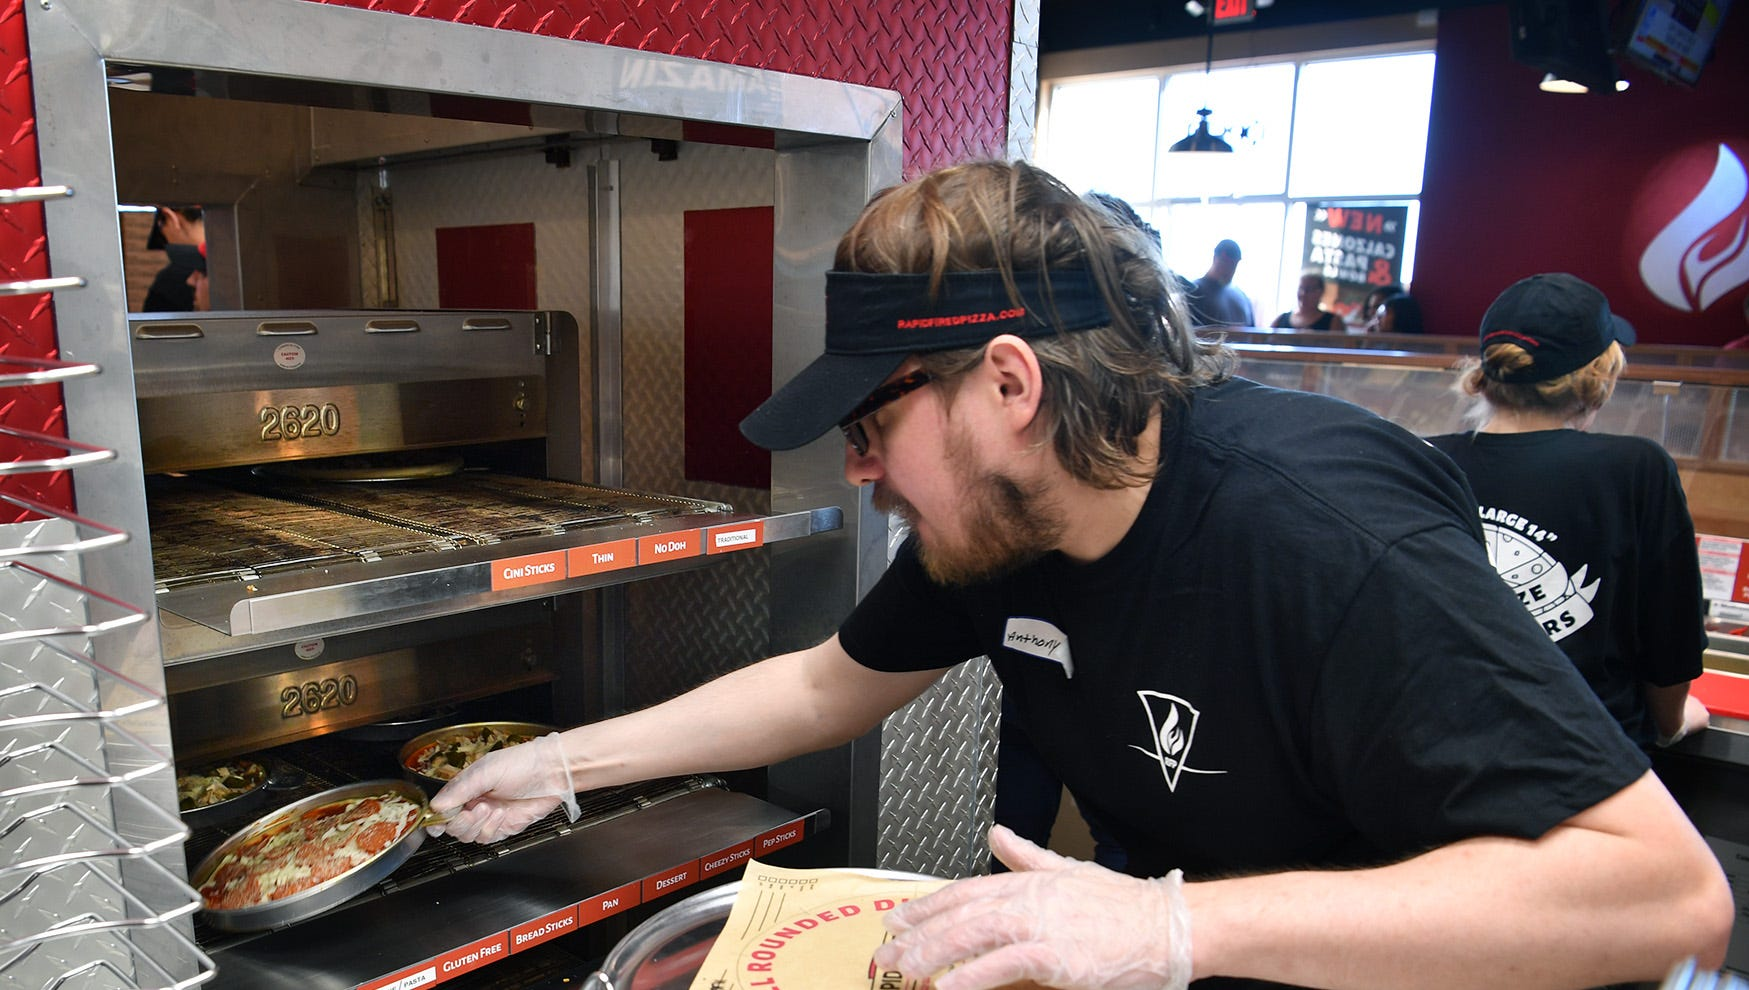 Anthony Sims places a freshly-made pizza into a special convection oven at Rapid Fired Pizza Monday morning. The new restaurant offered 500 free pizzas for their grand opening.